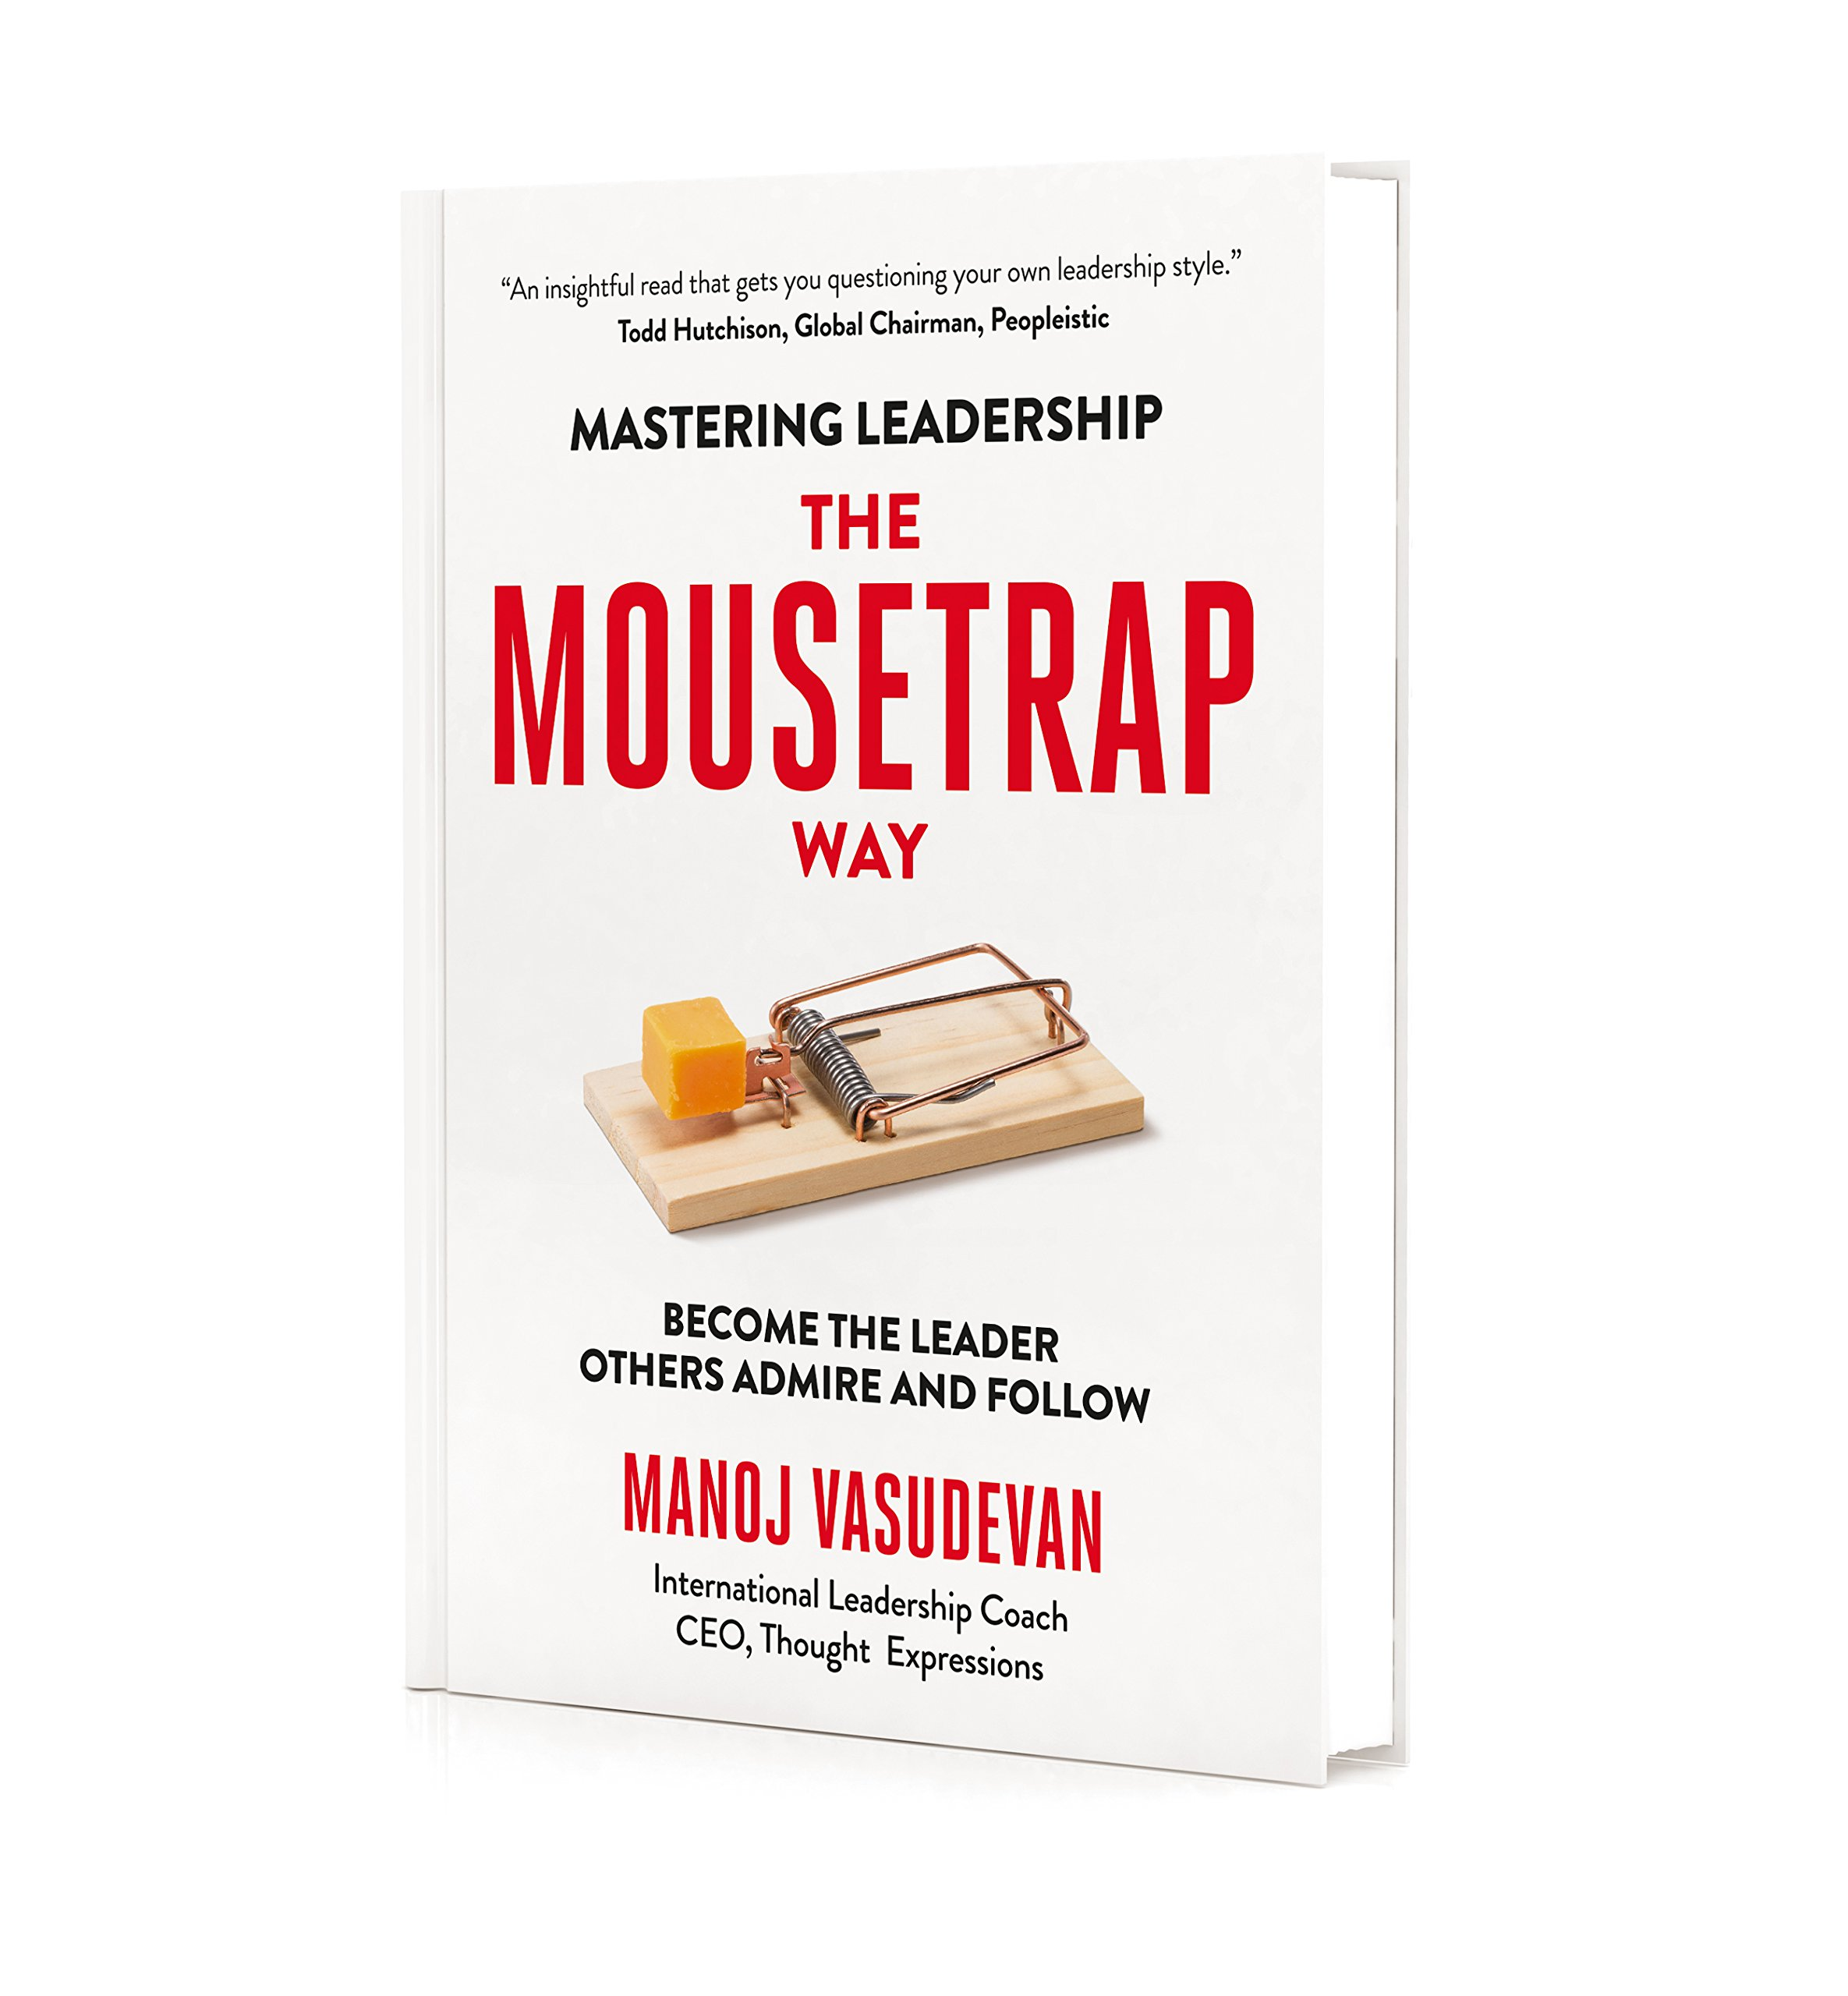 Mastering Leadership The Mousetrap Way: Become the leader others admire and follow